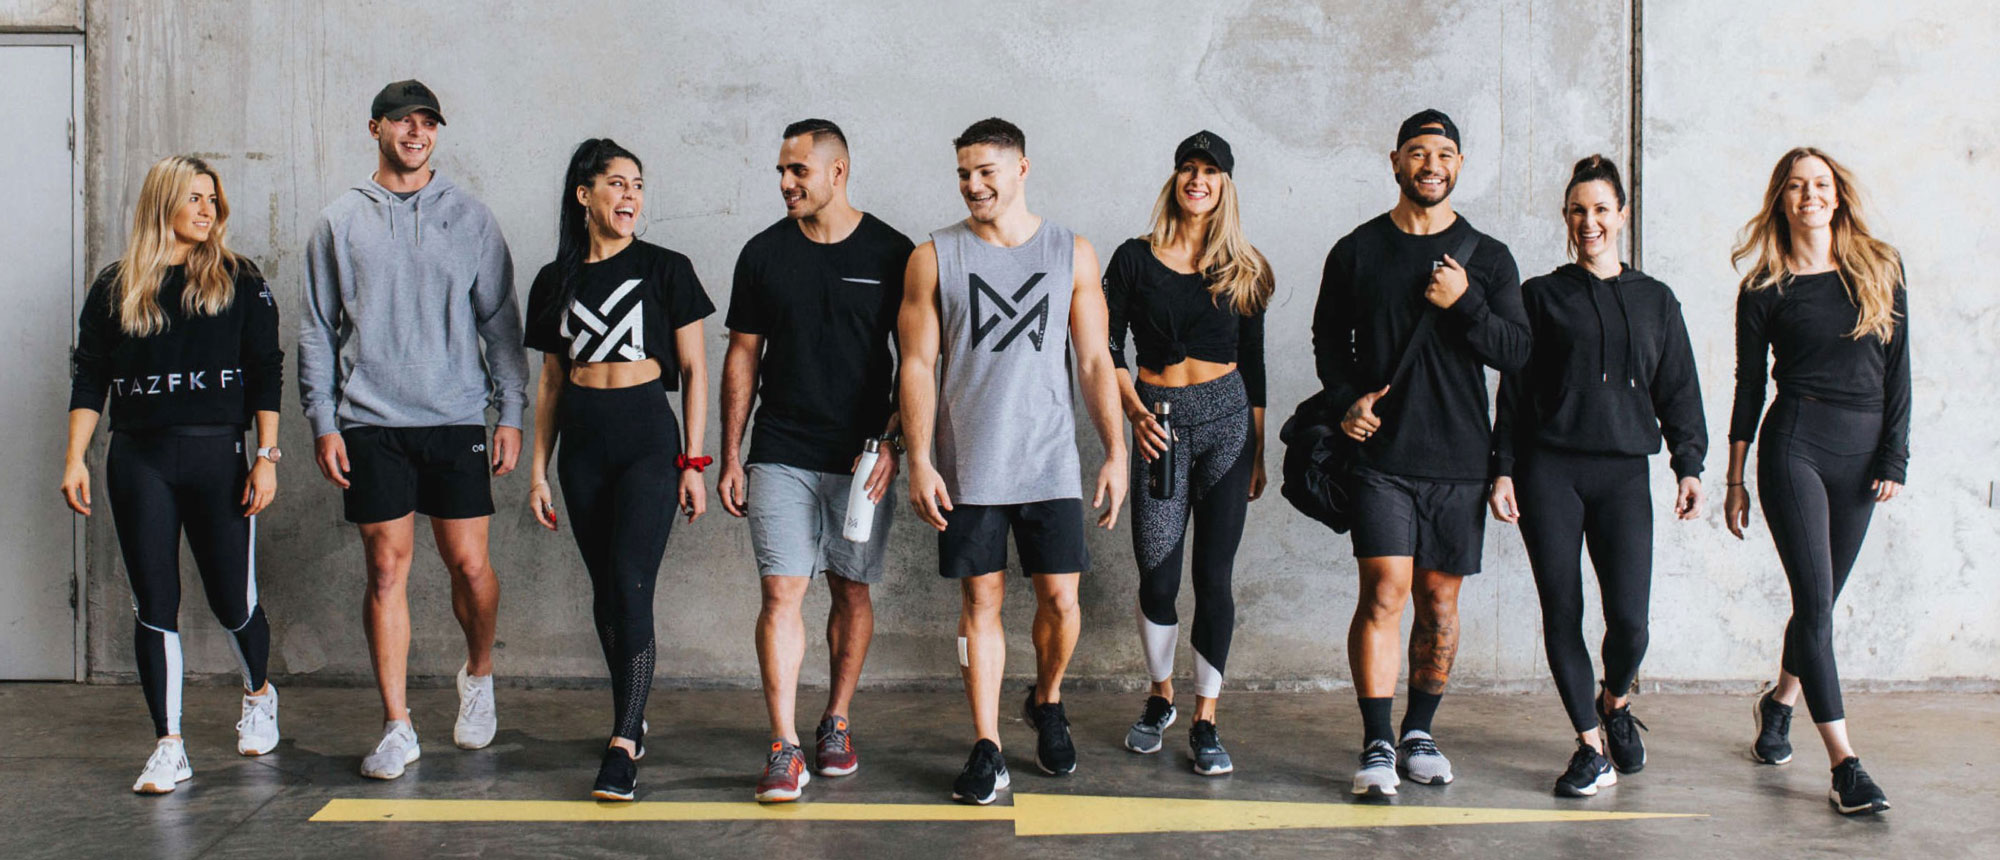 A large group of Vive Active trainers walk forward in a line, while wearing branded uniforms